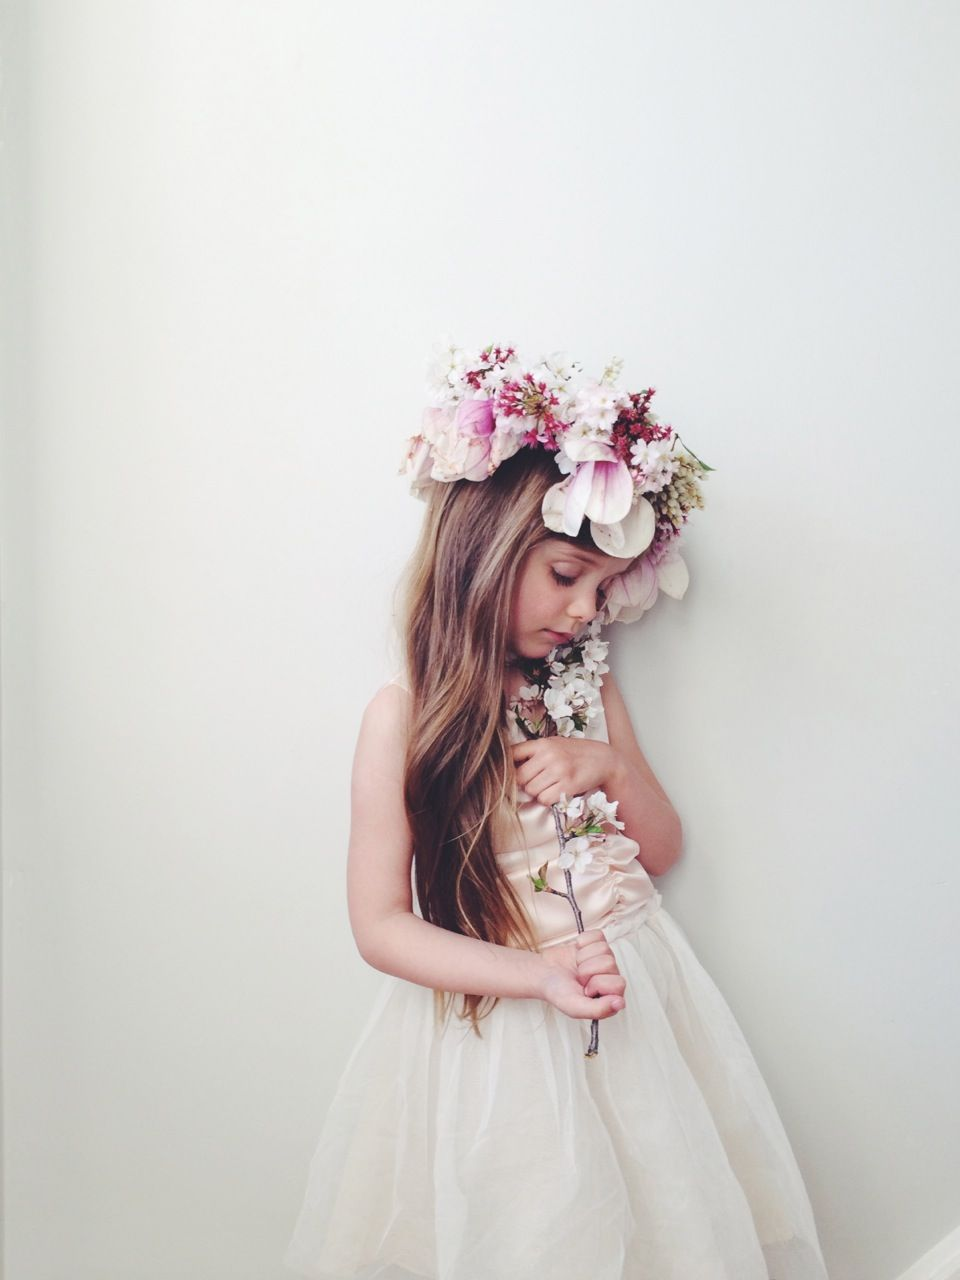 whats more fitting for a flower girl than a flower crown add color to your little ones look with some loosely tucked fresh blooms izmirmasajfo Gallery